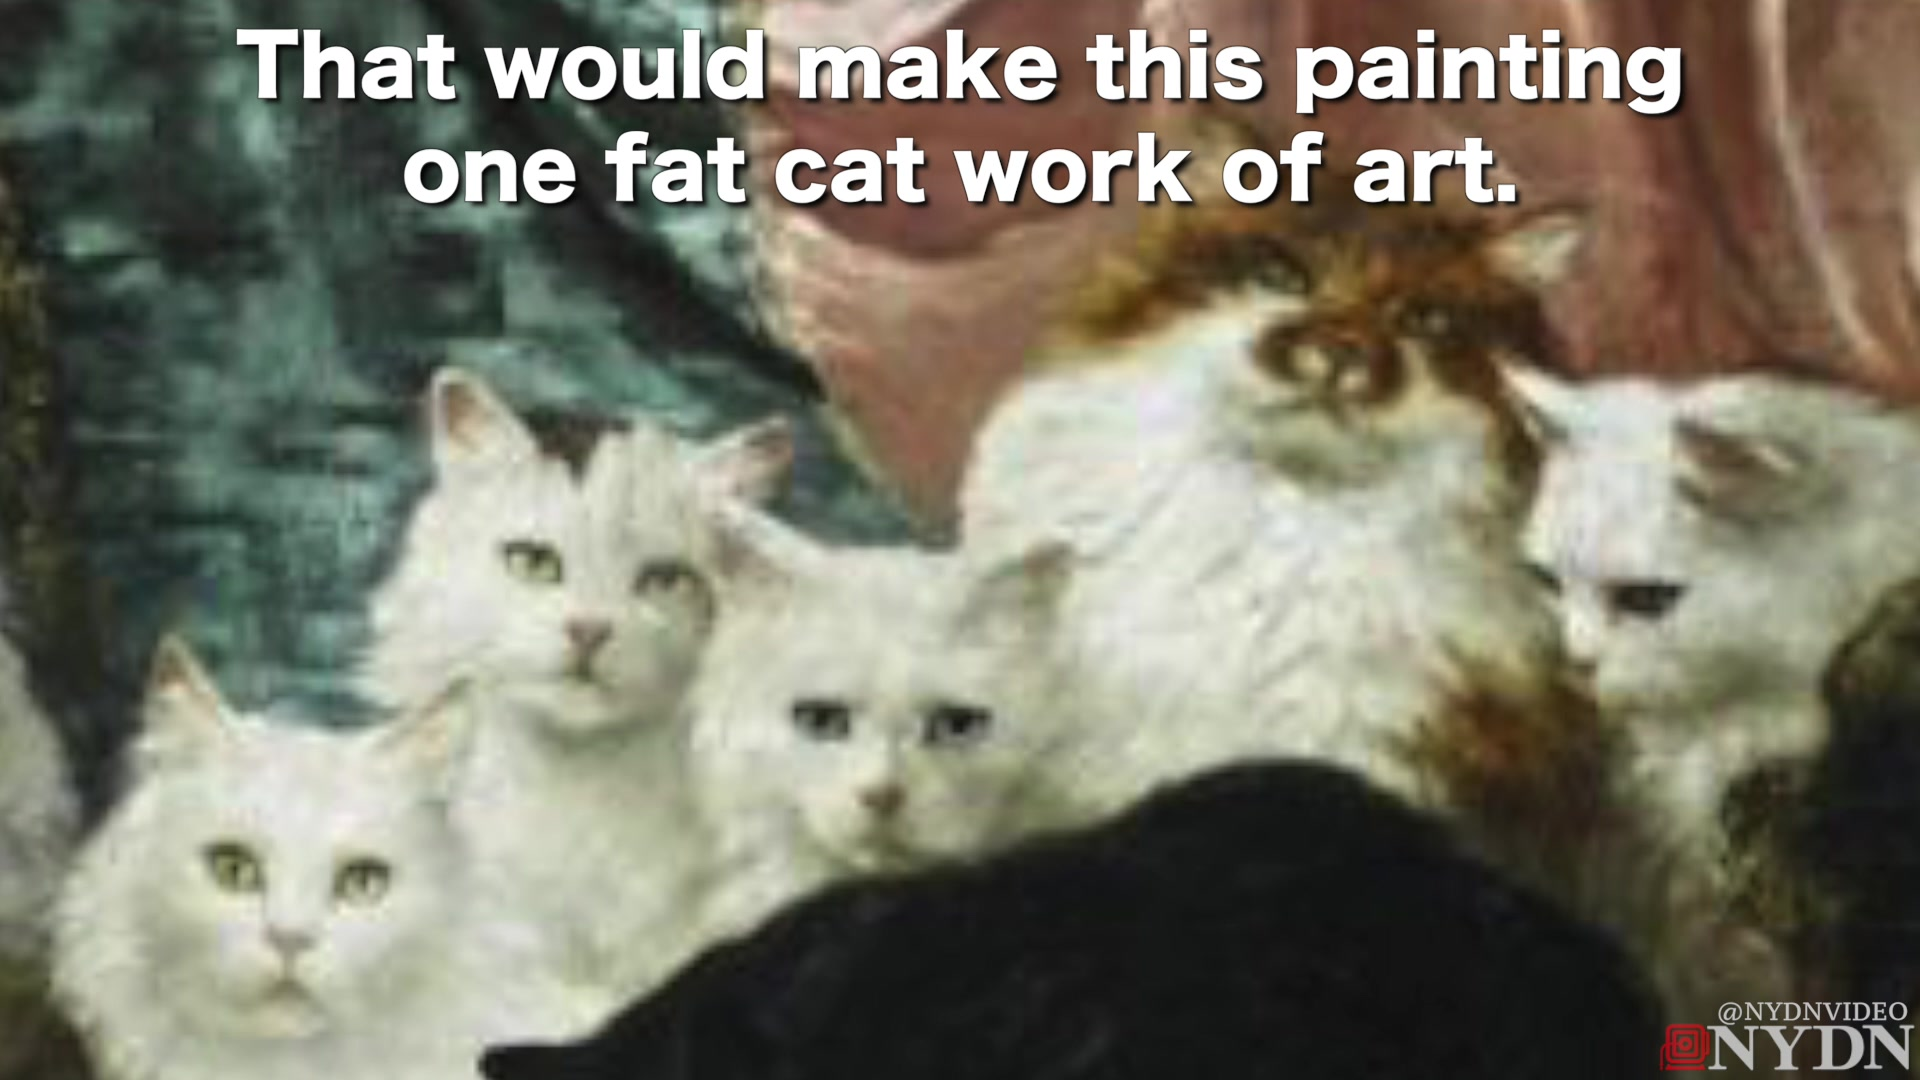 Massive Cat Painting Sells for Nearly $1 Million